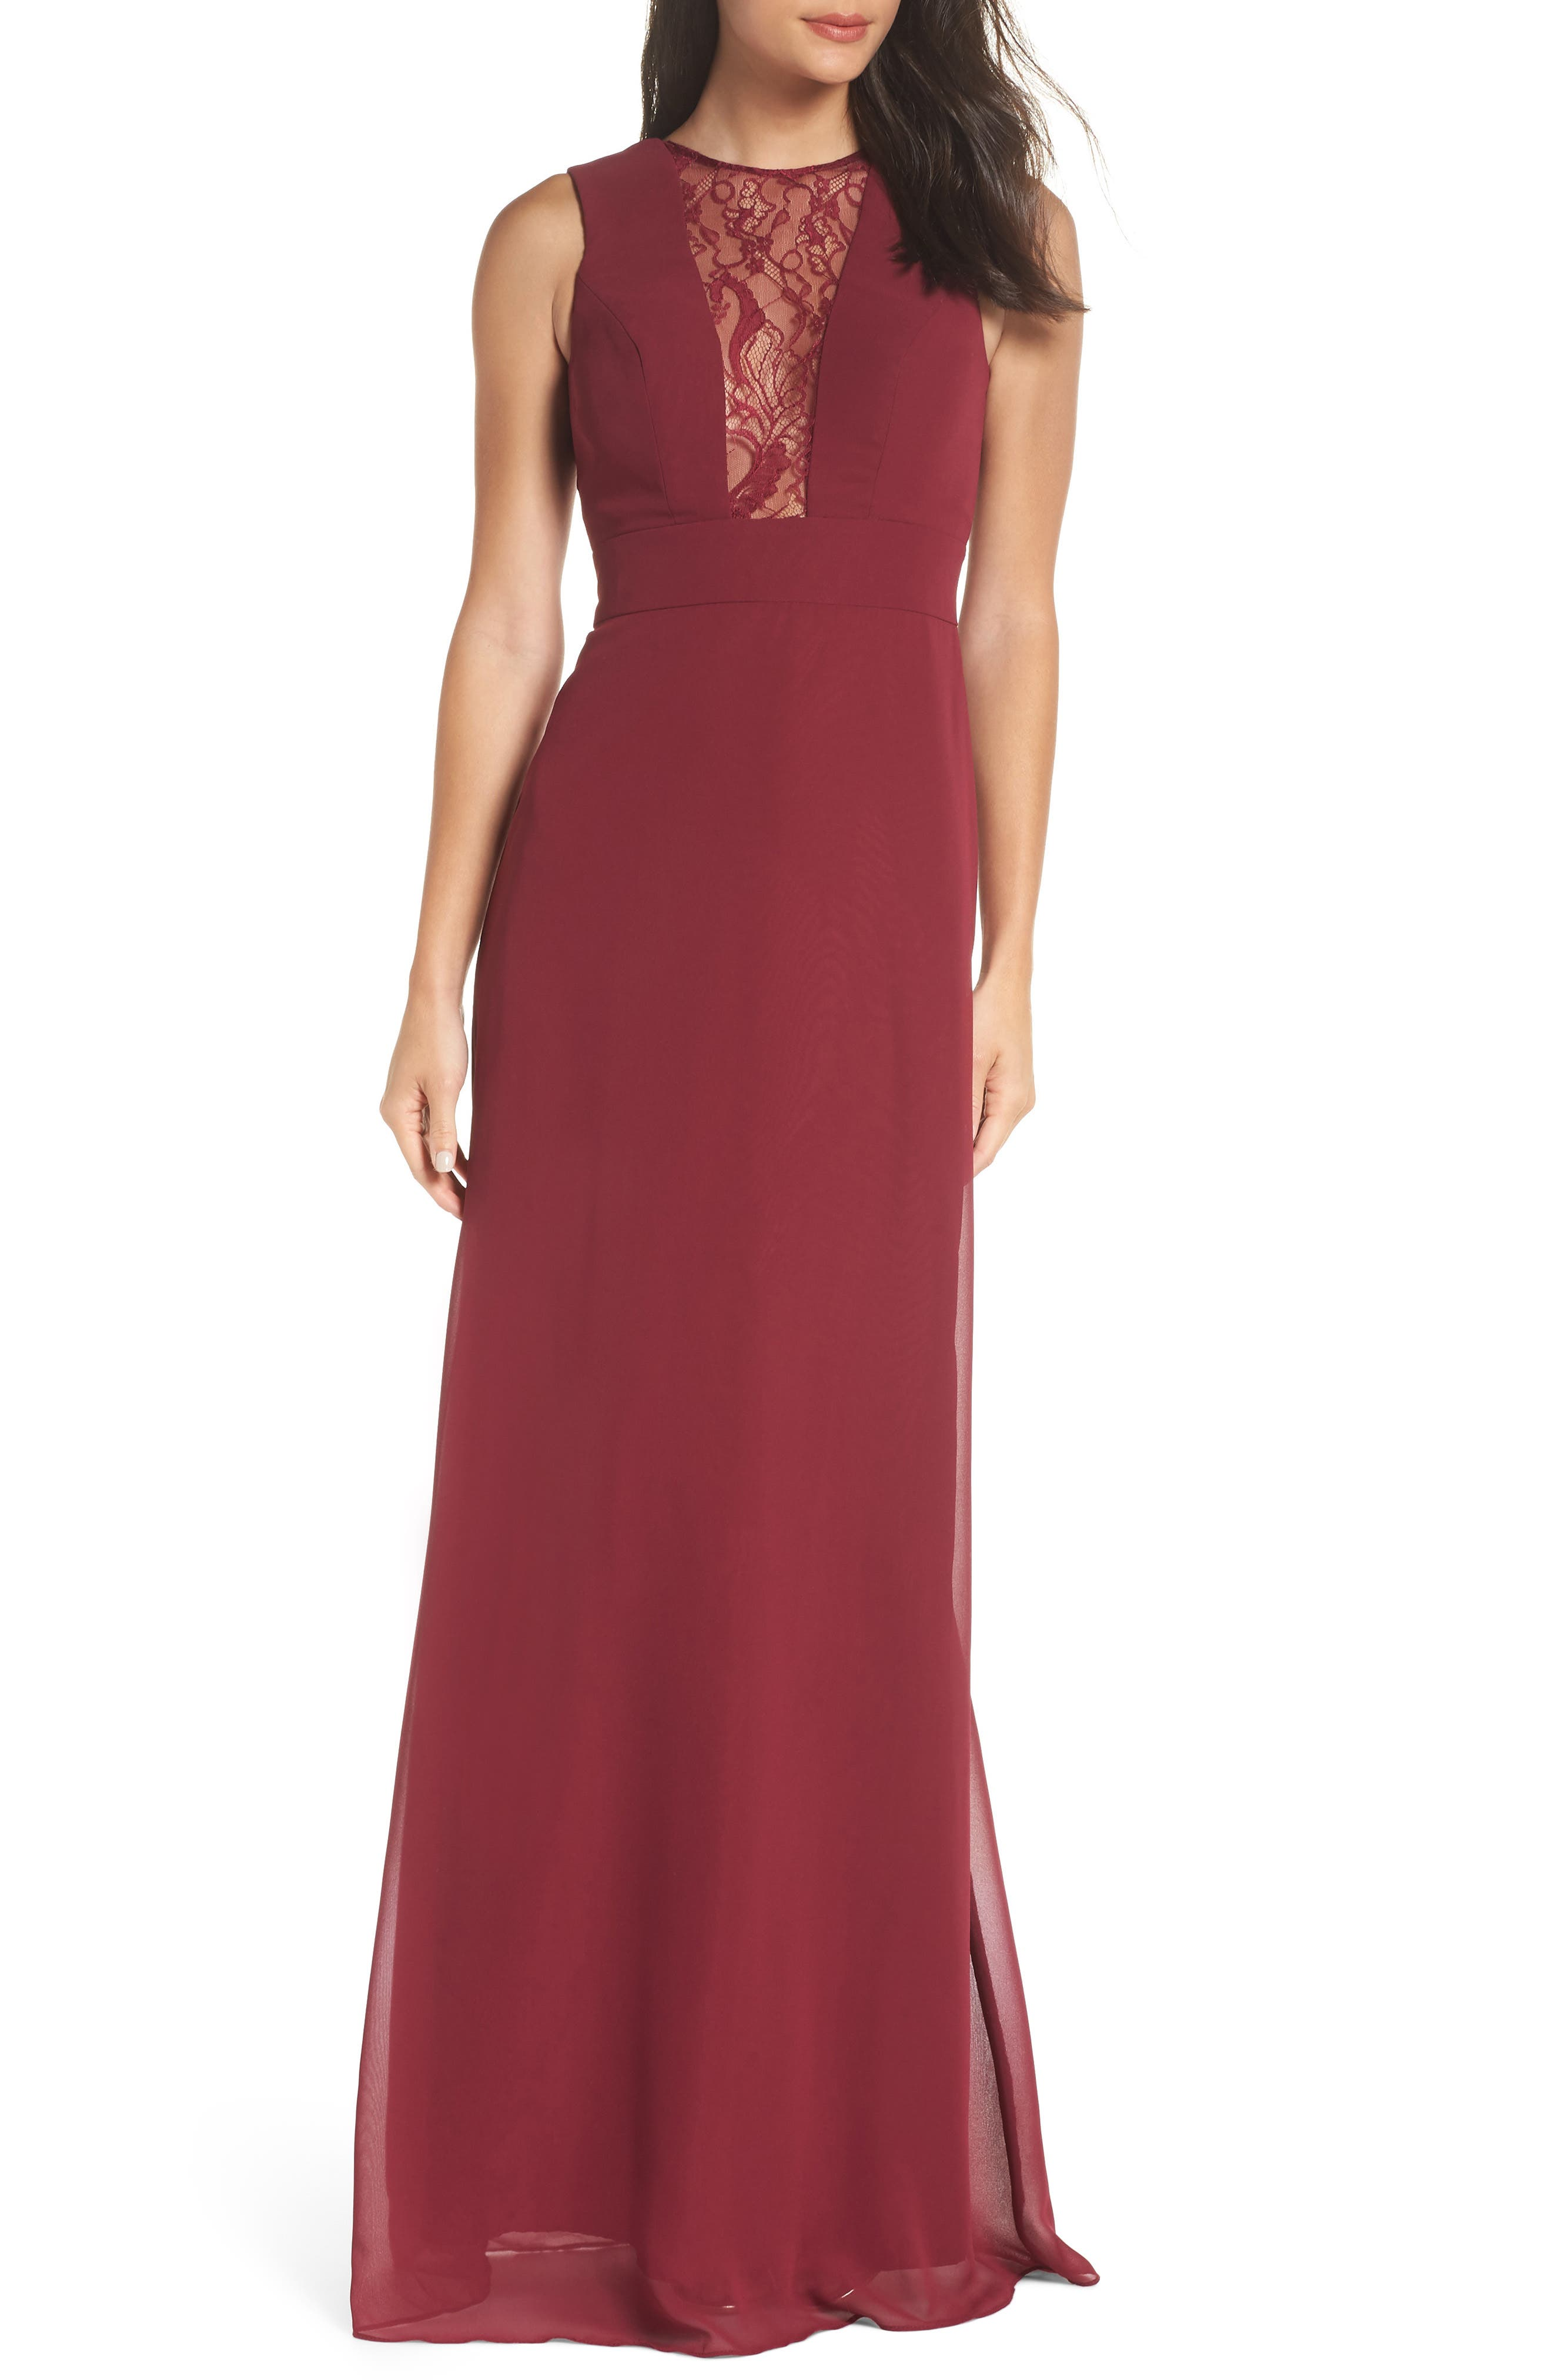 Hayley Paige Occasions Lace Inset Chiffon Gown